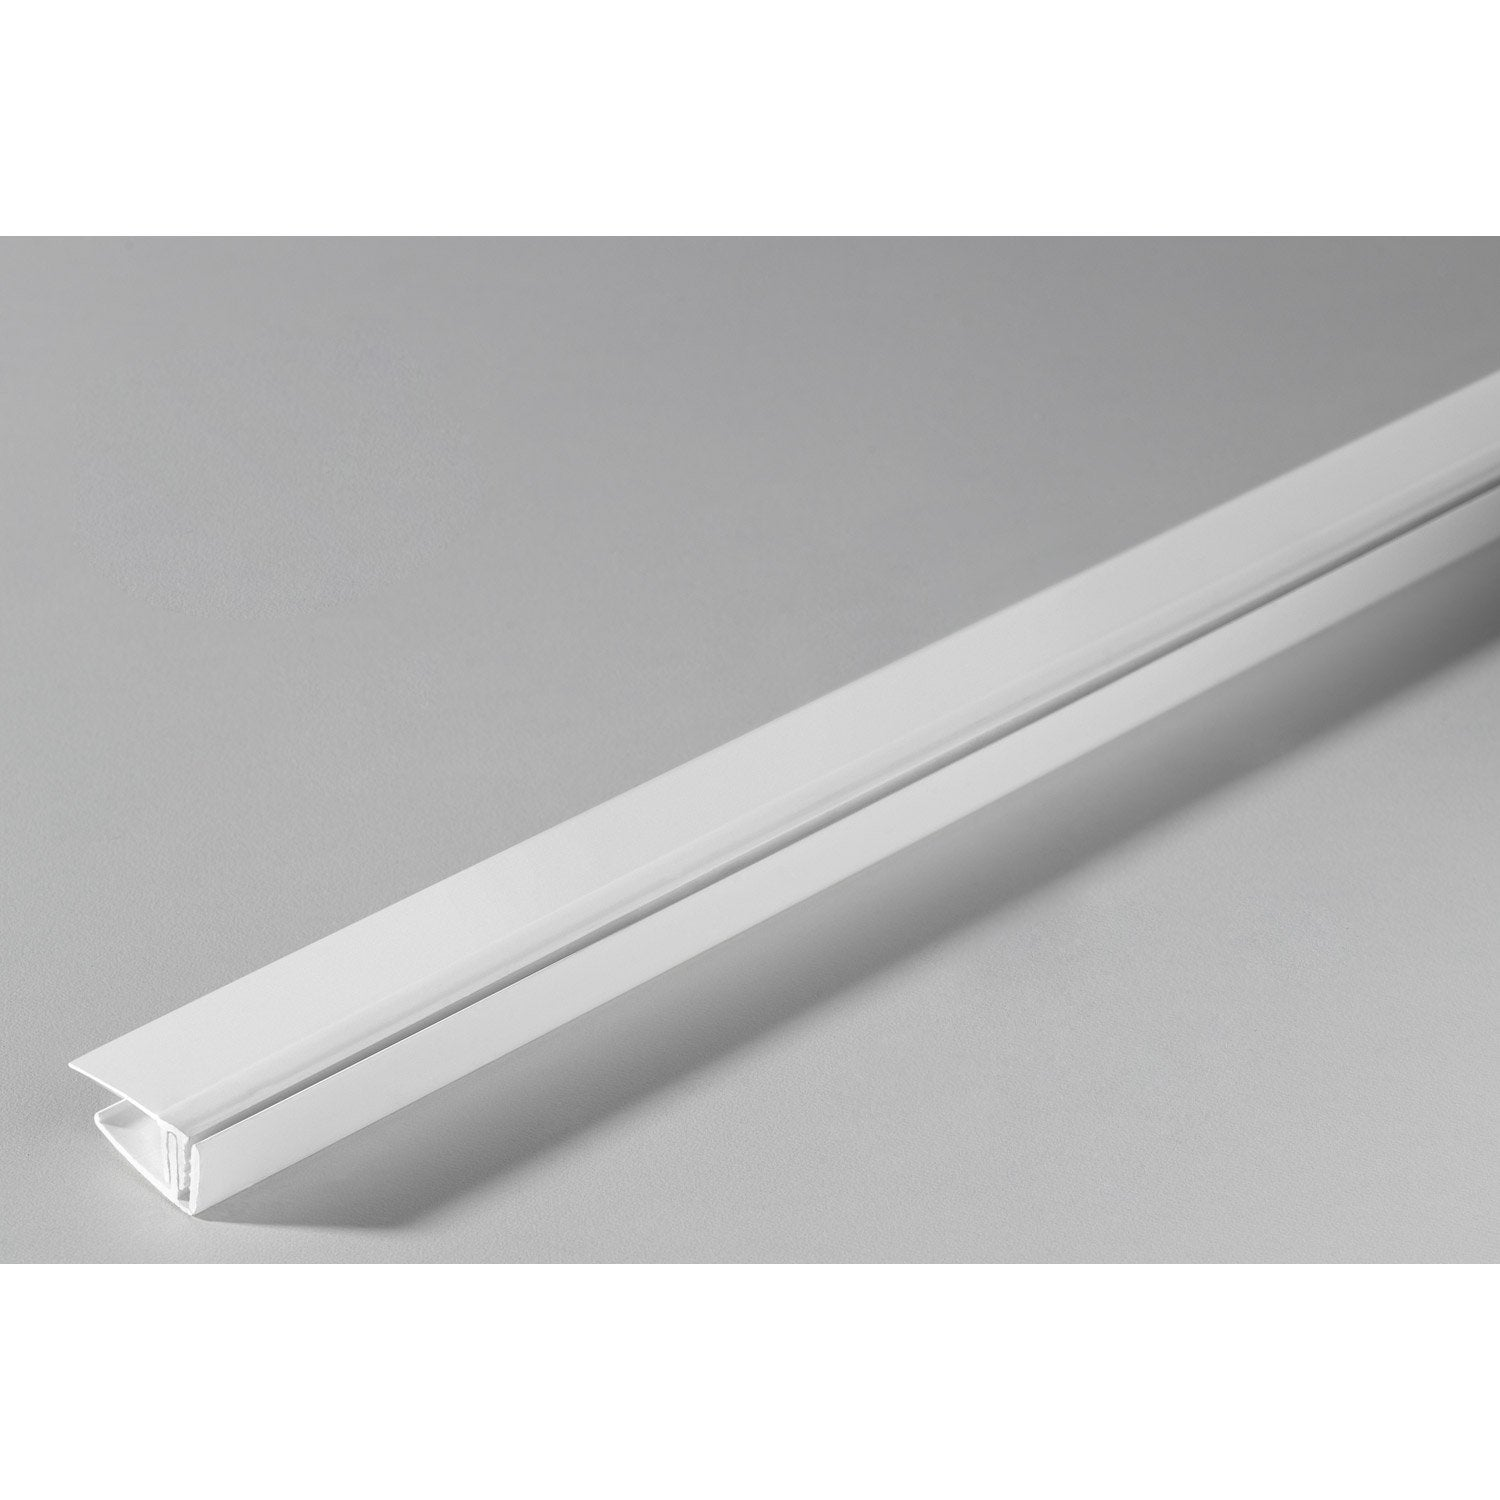 Profil de finition clipsable grosfillex pvc blanc for Laminas pvc leroy merlin